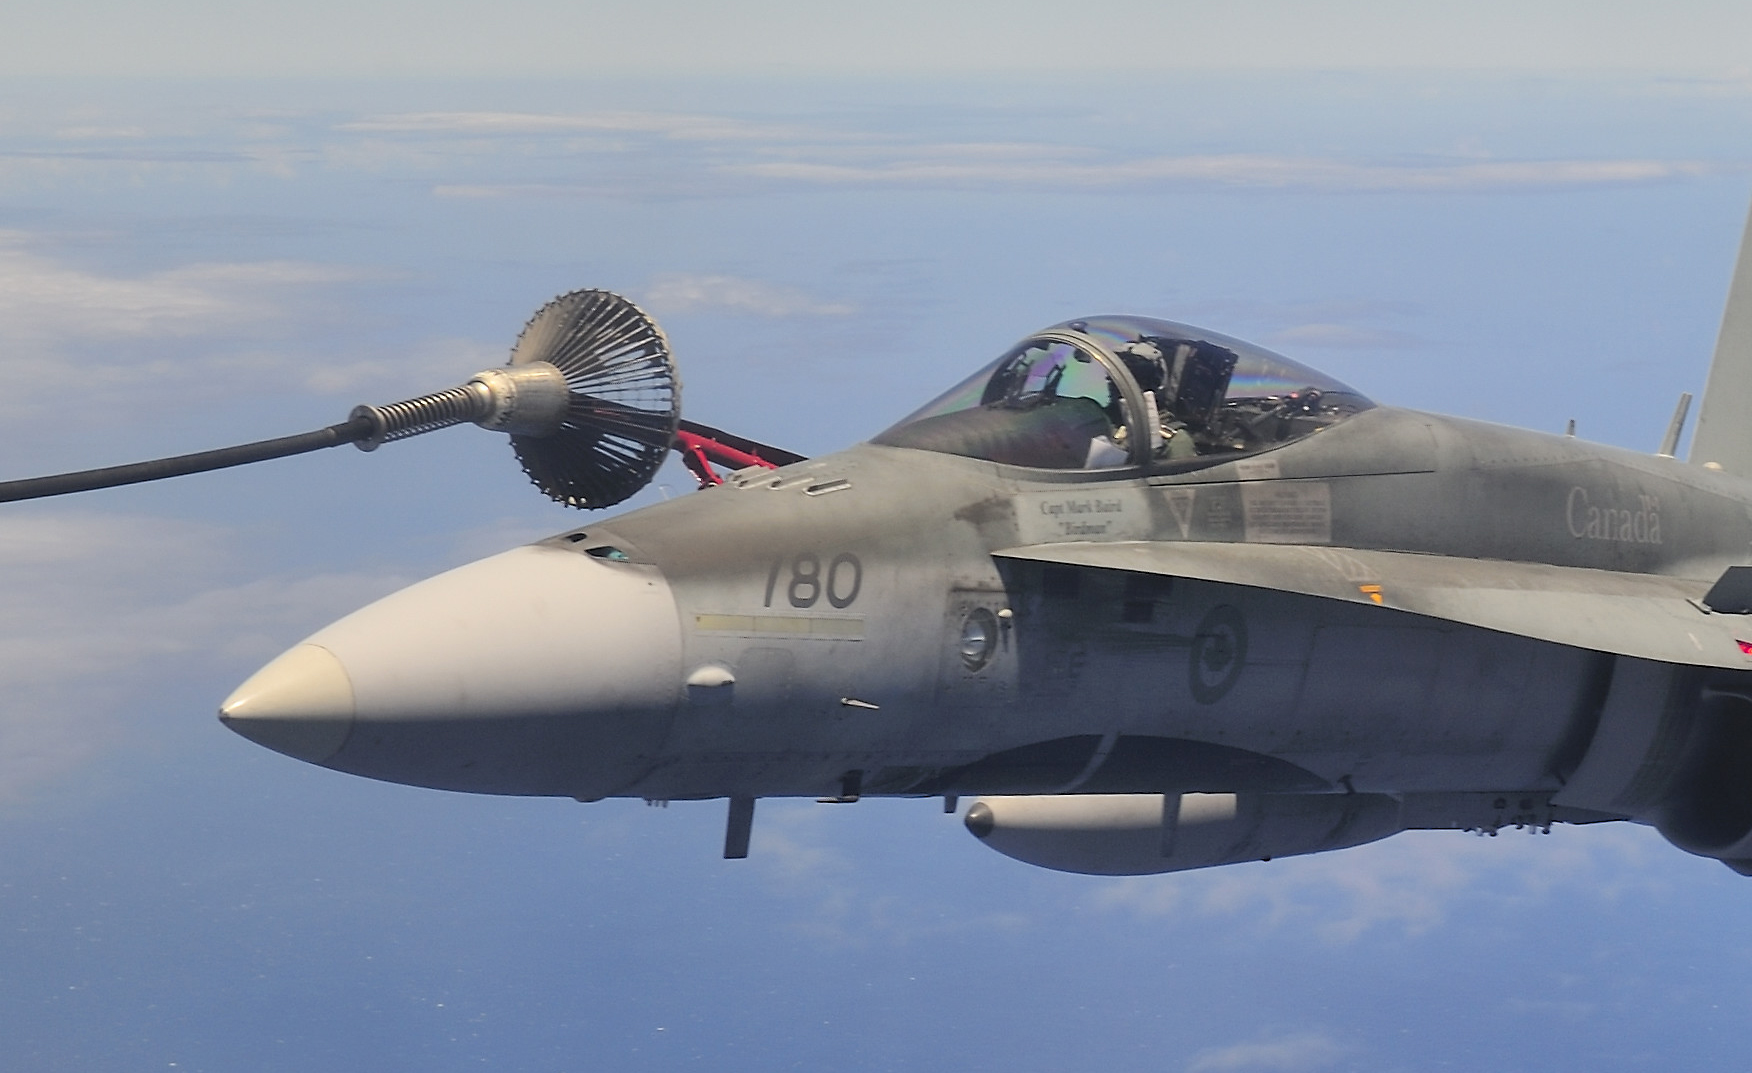 "On July 25, 2012, an RCAF CC-130HT Hercules air-to-air refueller from 435 Transport and Rescue Squadron, tops up a CF-188 Hornet from 409 Tactical Fighter Squadron in Cold Lake, Alberta, over the Pacific Ocean near Joint Base Pearl Harbor-Hickam, in Honolulu, Hawaii, on July 25, 2012. Both were participating in Exercise Rim of the Pacific (RIMPAC). This photo illustrates the ""probe and drogue"" method that the RCAF uses for refuelling. The probe is the mechanism on the fighter and the drogue is the basket attached to the hose through which the fuel is pumped. PHOTO: Master Marc-André Gaudreault, IS2012-2003-154"